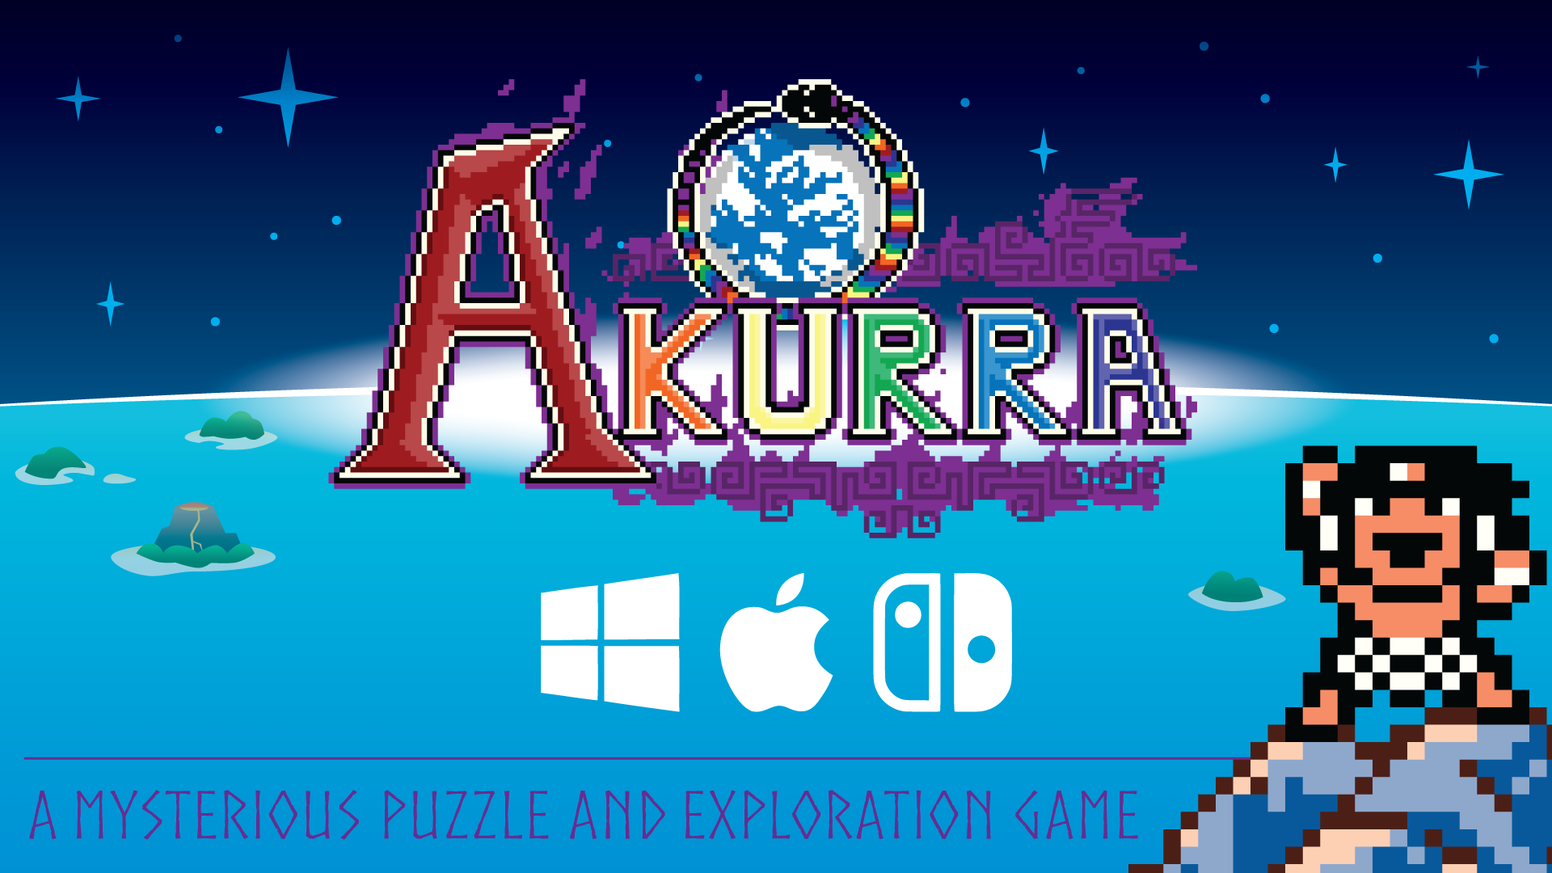 Akurra is a block pushing puzzle and exploration game inspired by games like Chip's Challenge, Star Tropics, Sokoban, and Zelda.